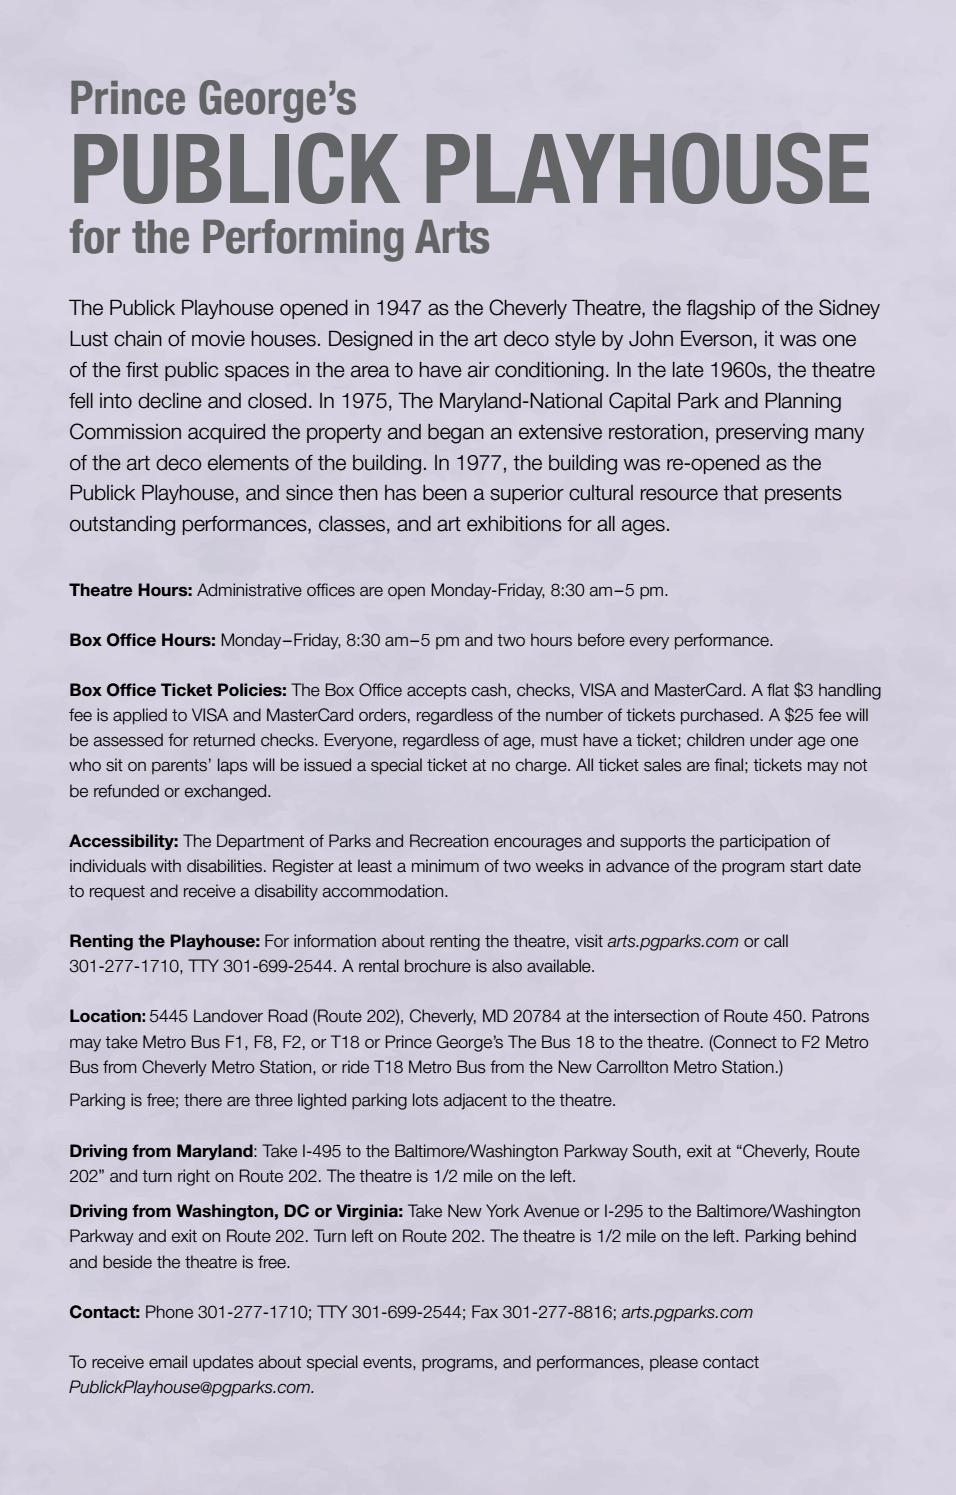 Publick Playhouse Brochure, 2016-2017 by M-NCPPC, Department of